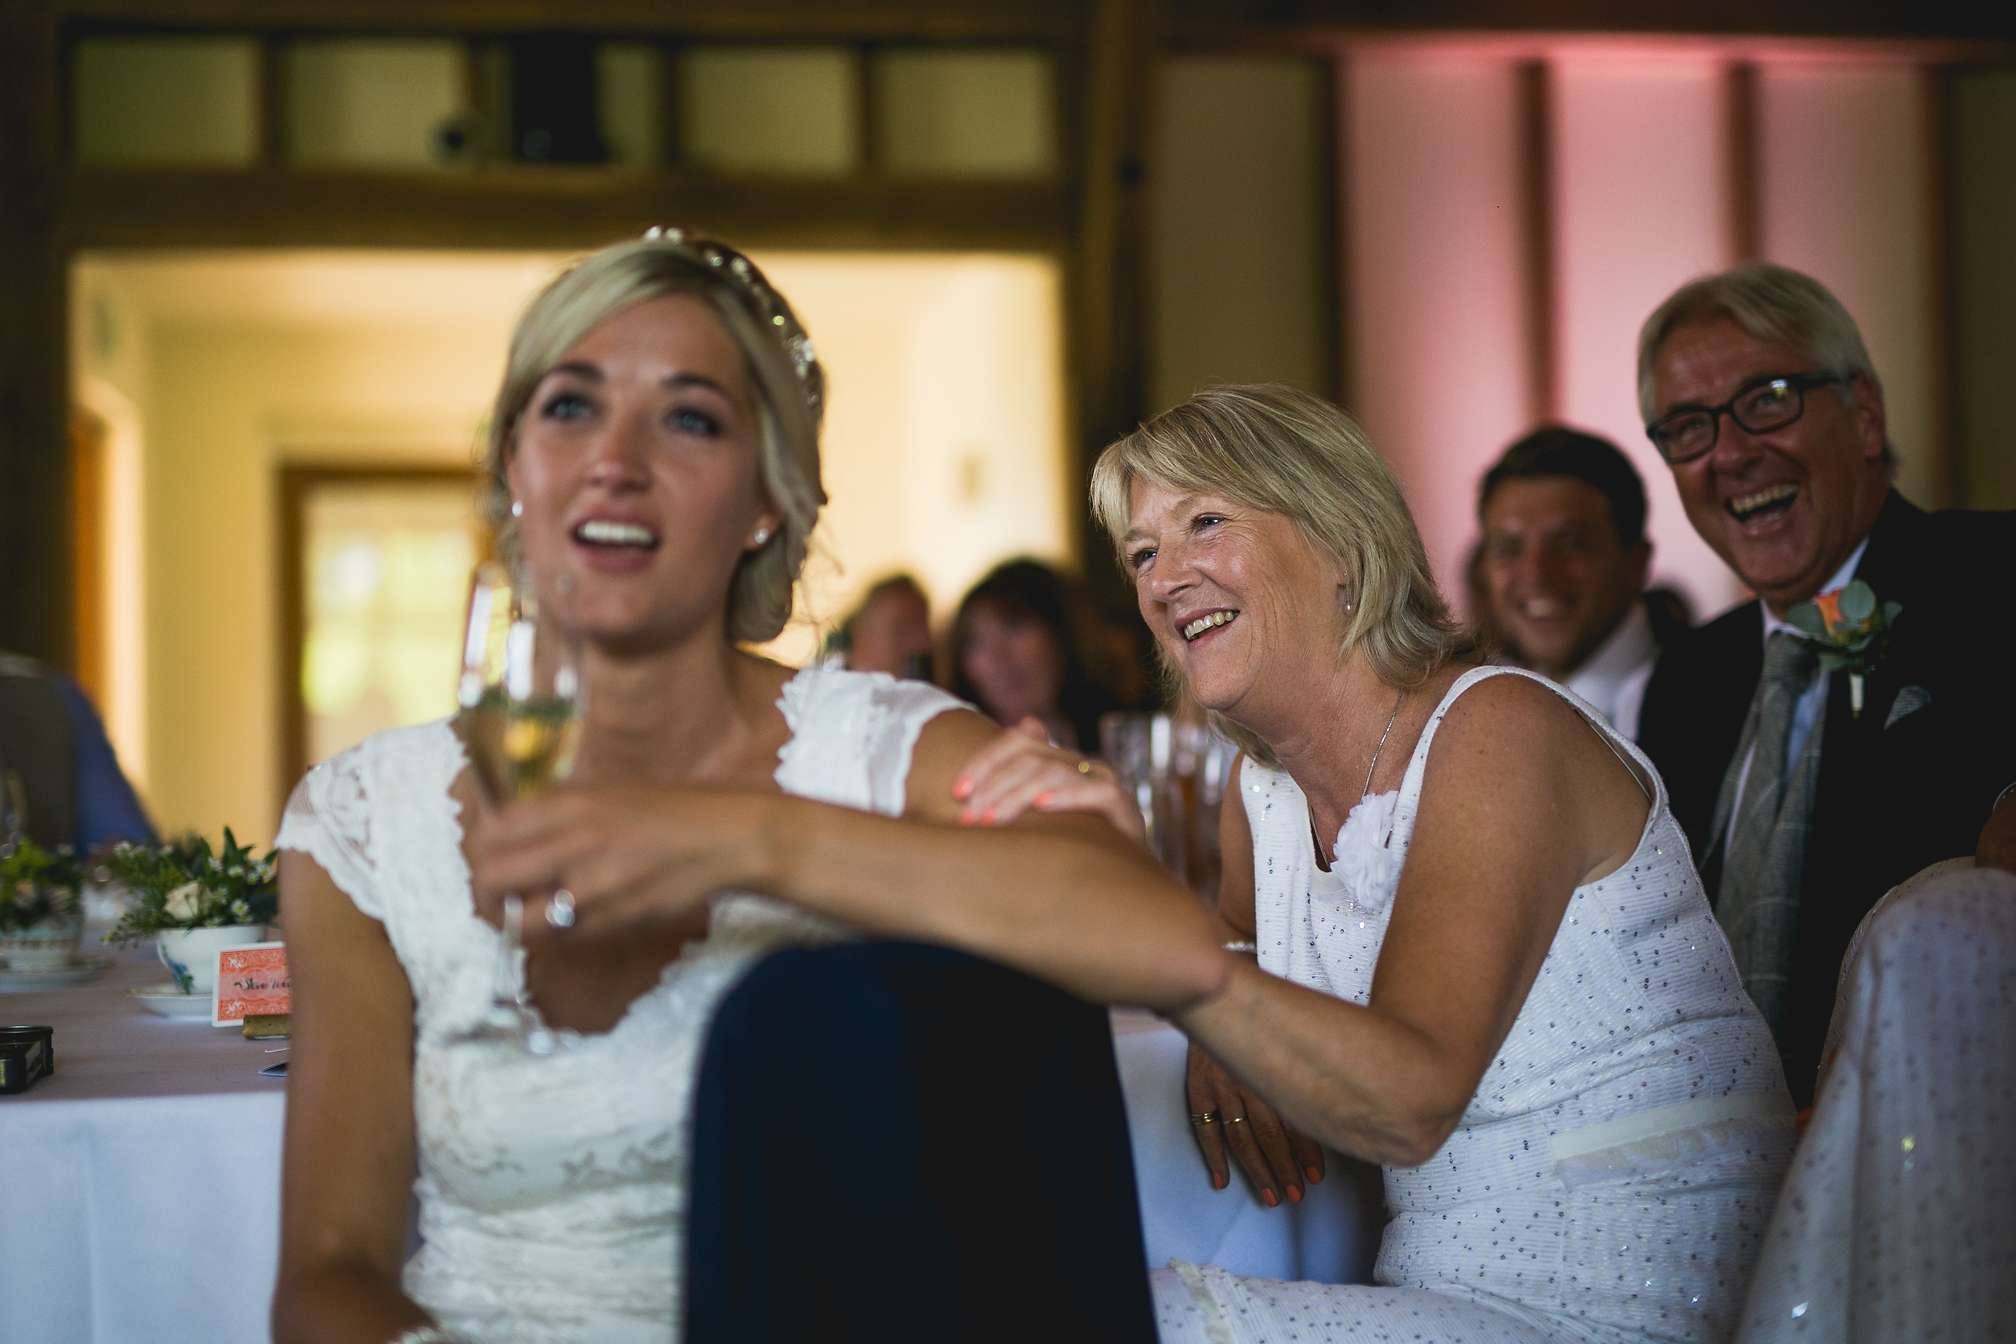 Janes mum laughing during the speeches